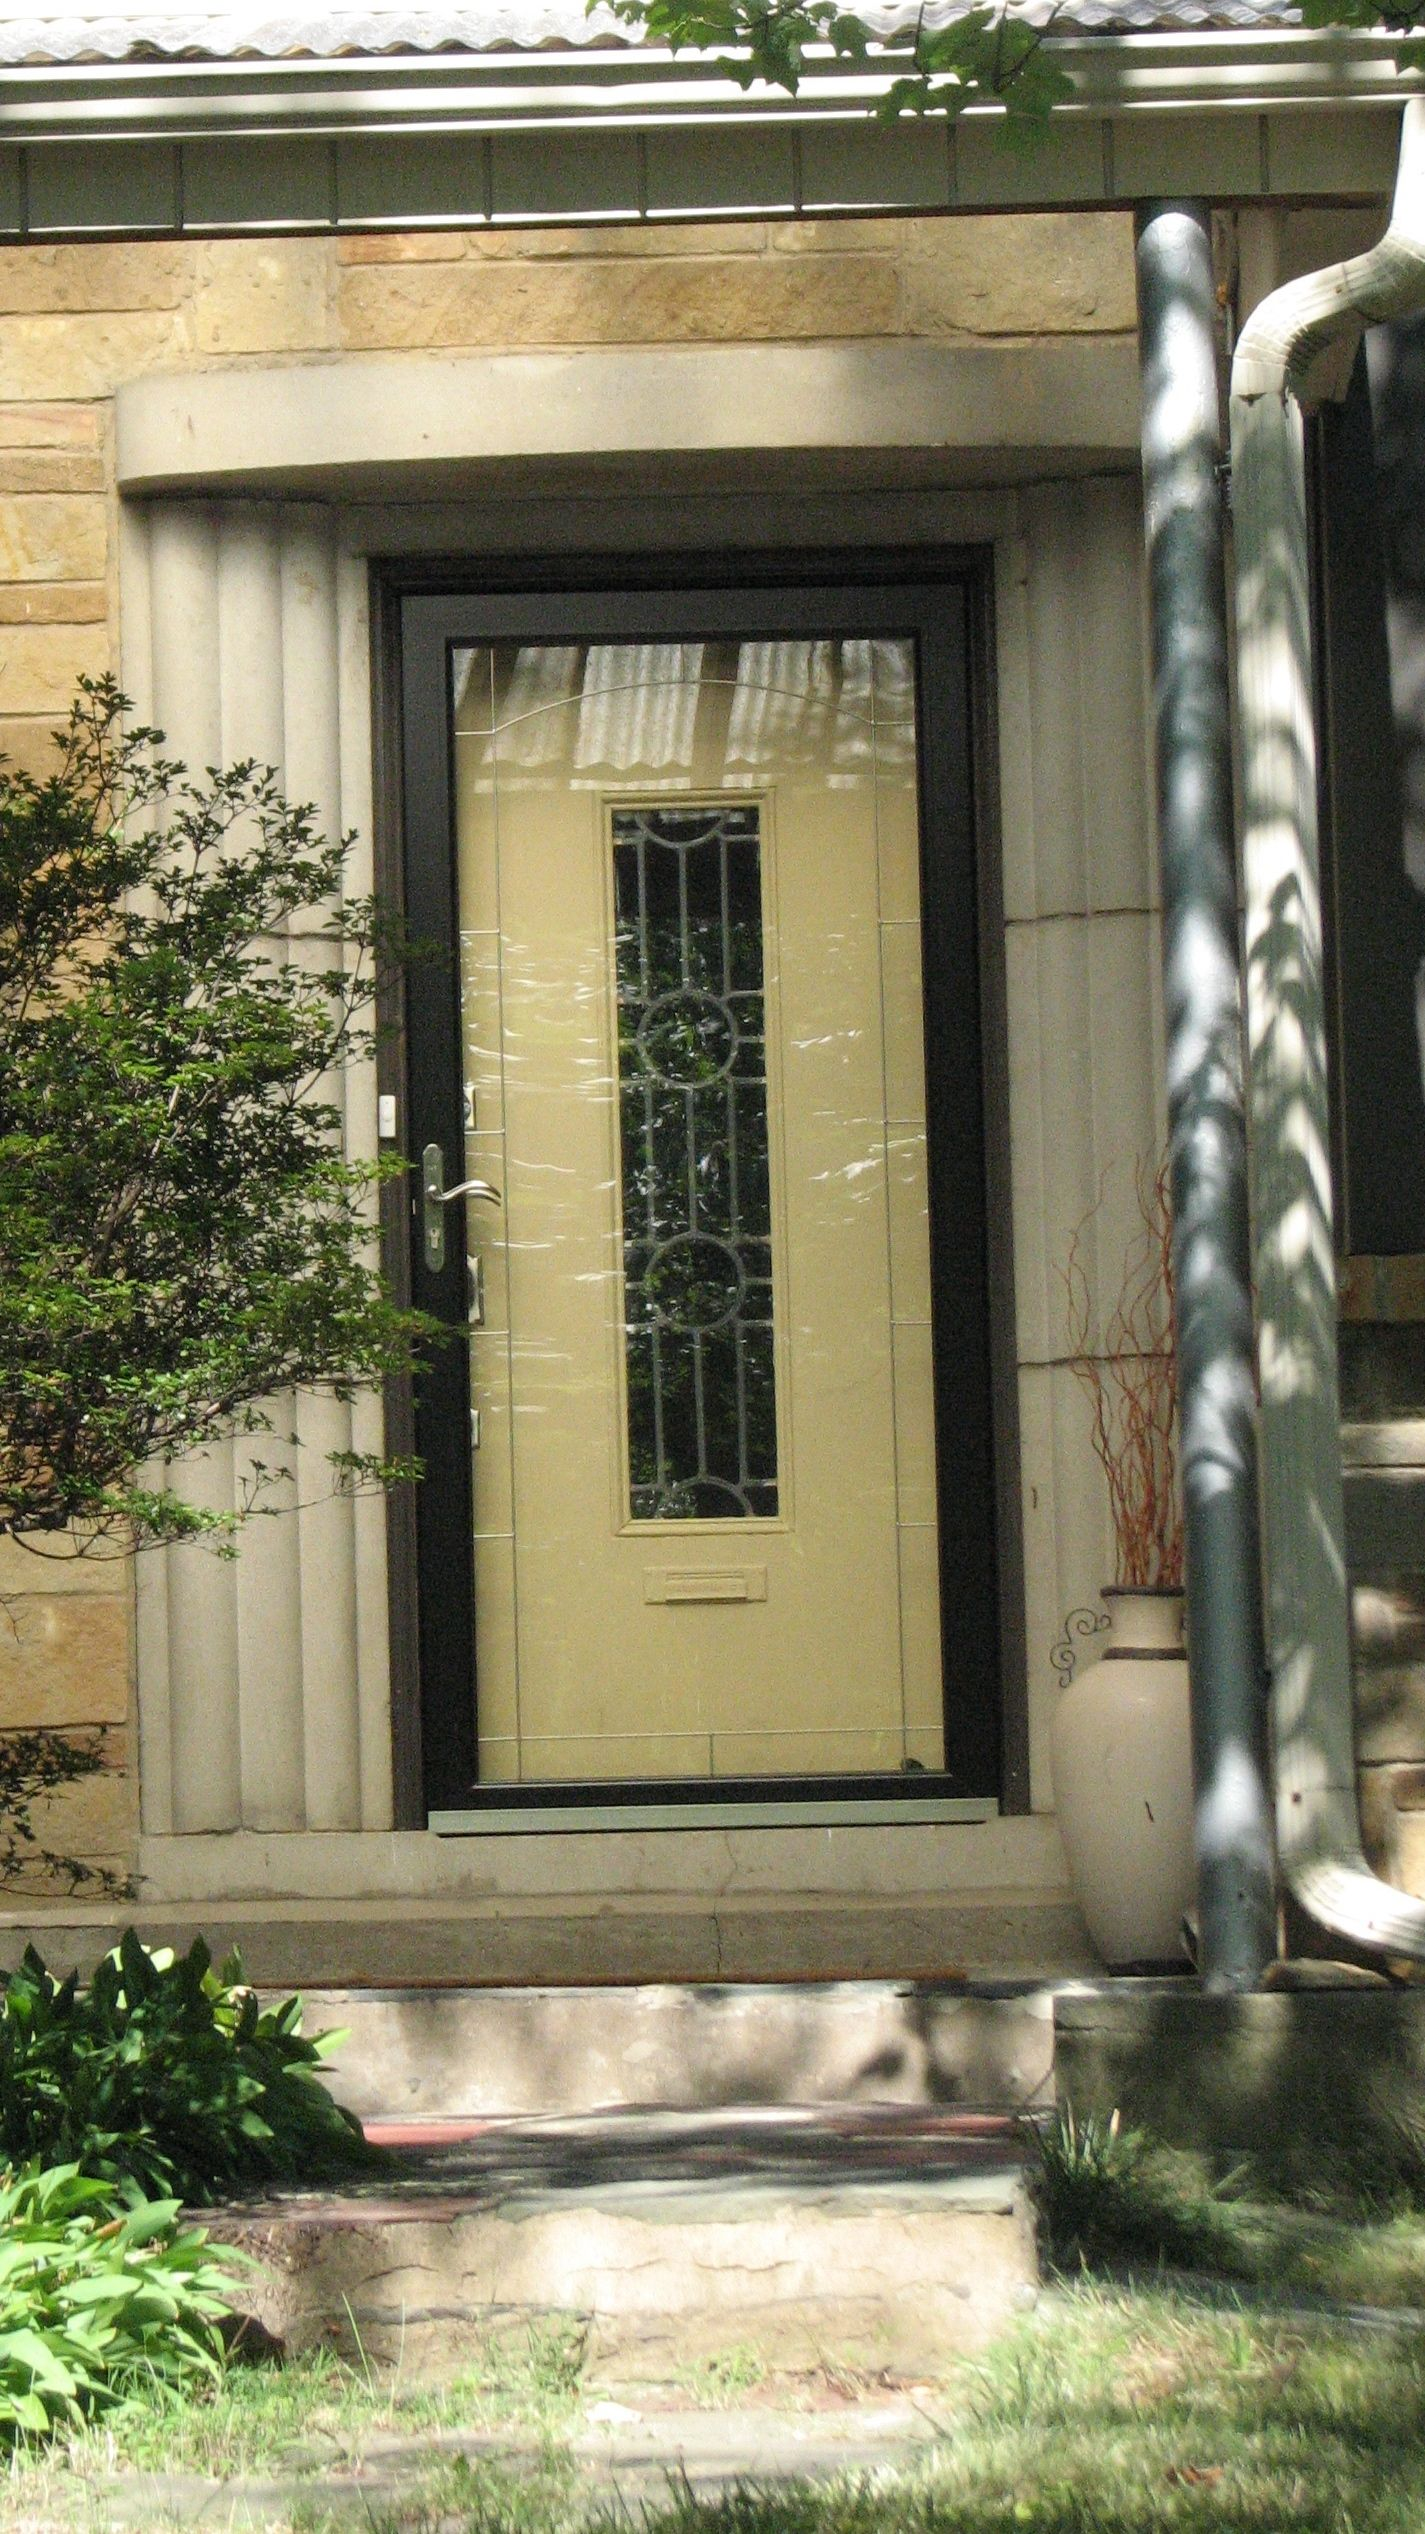 The Art Deco-style portico and line-and-circle glass design have survived on several homes.